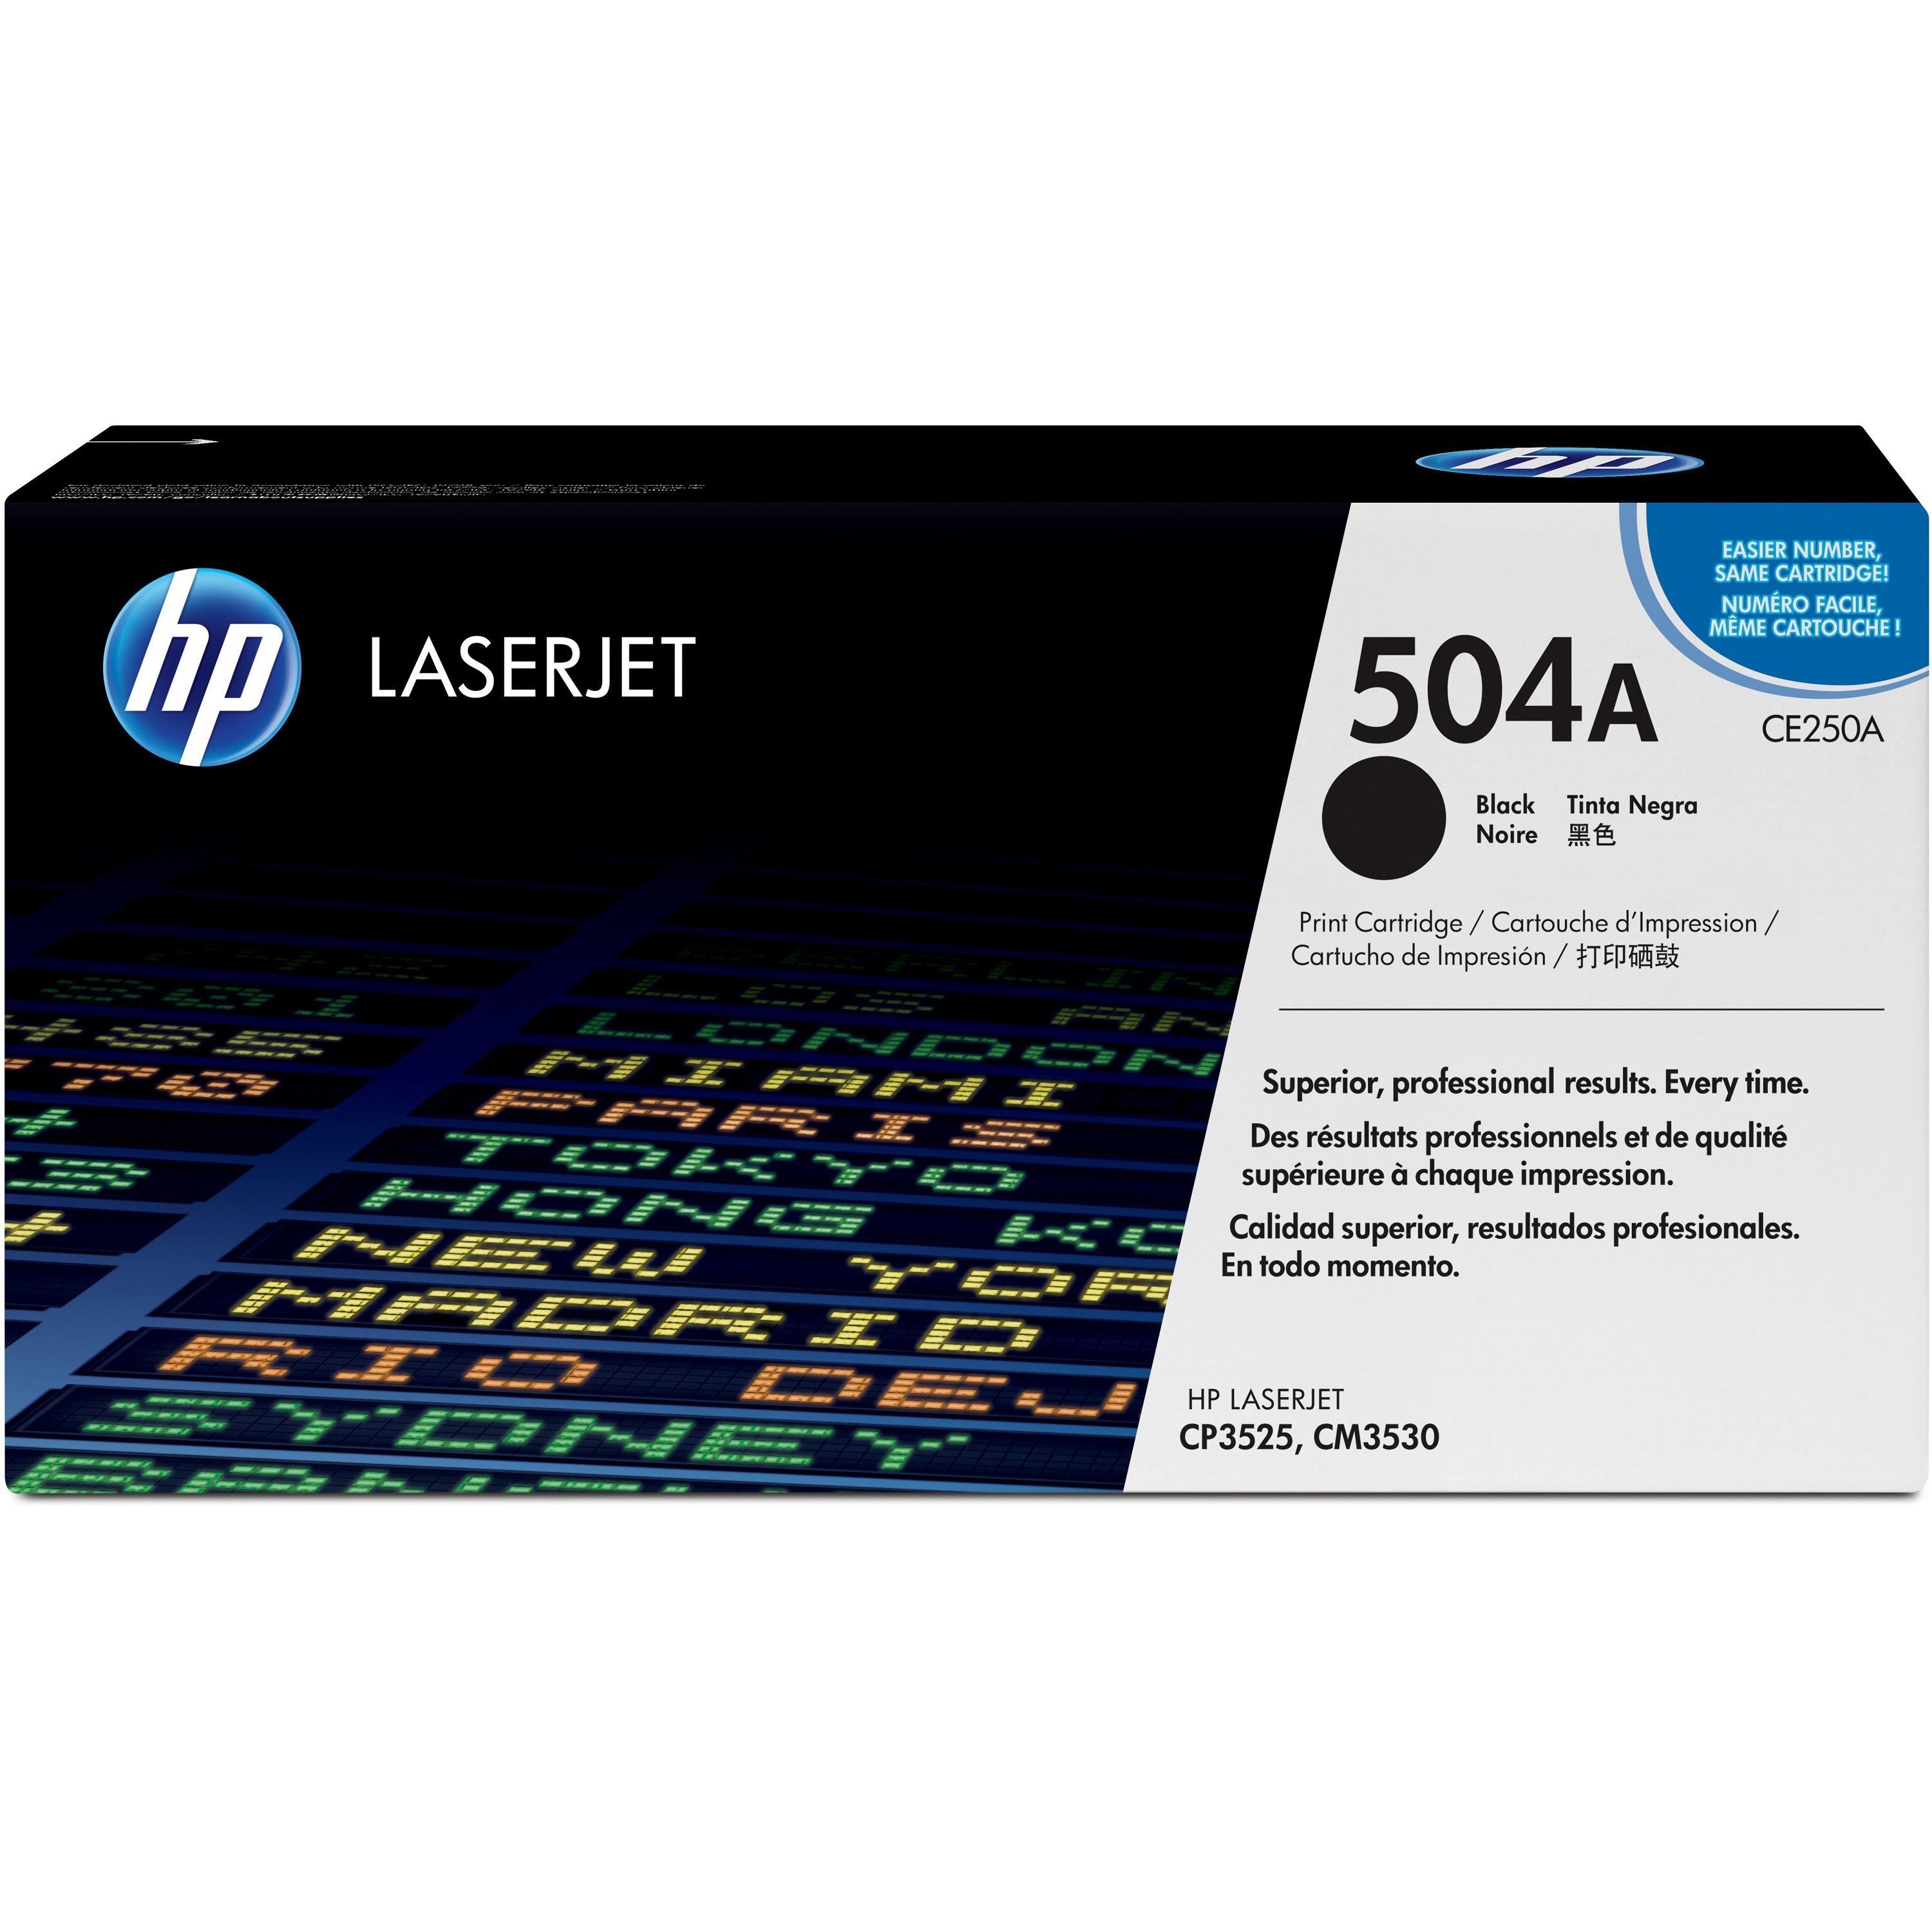 HP 504A (CE250A) Black Original LJ Toner Cartridge